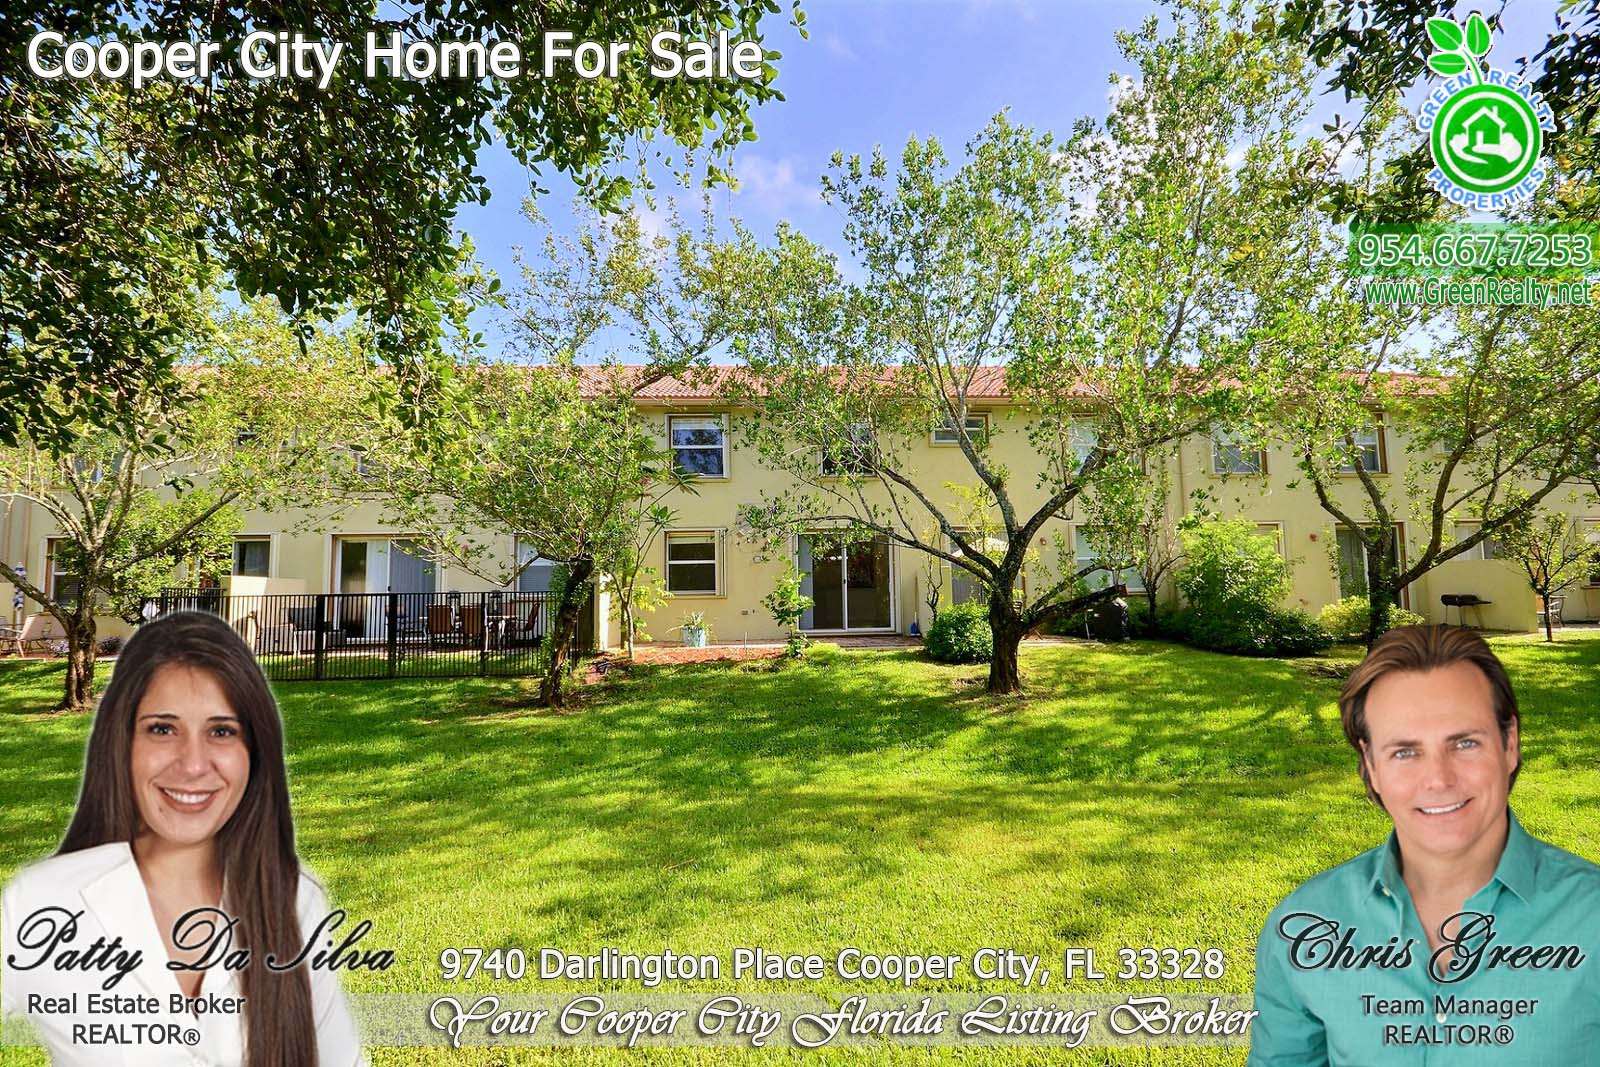 27 Darlington Park Cooper City Homes For Sale (4)